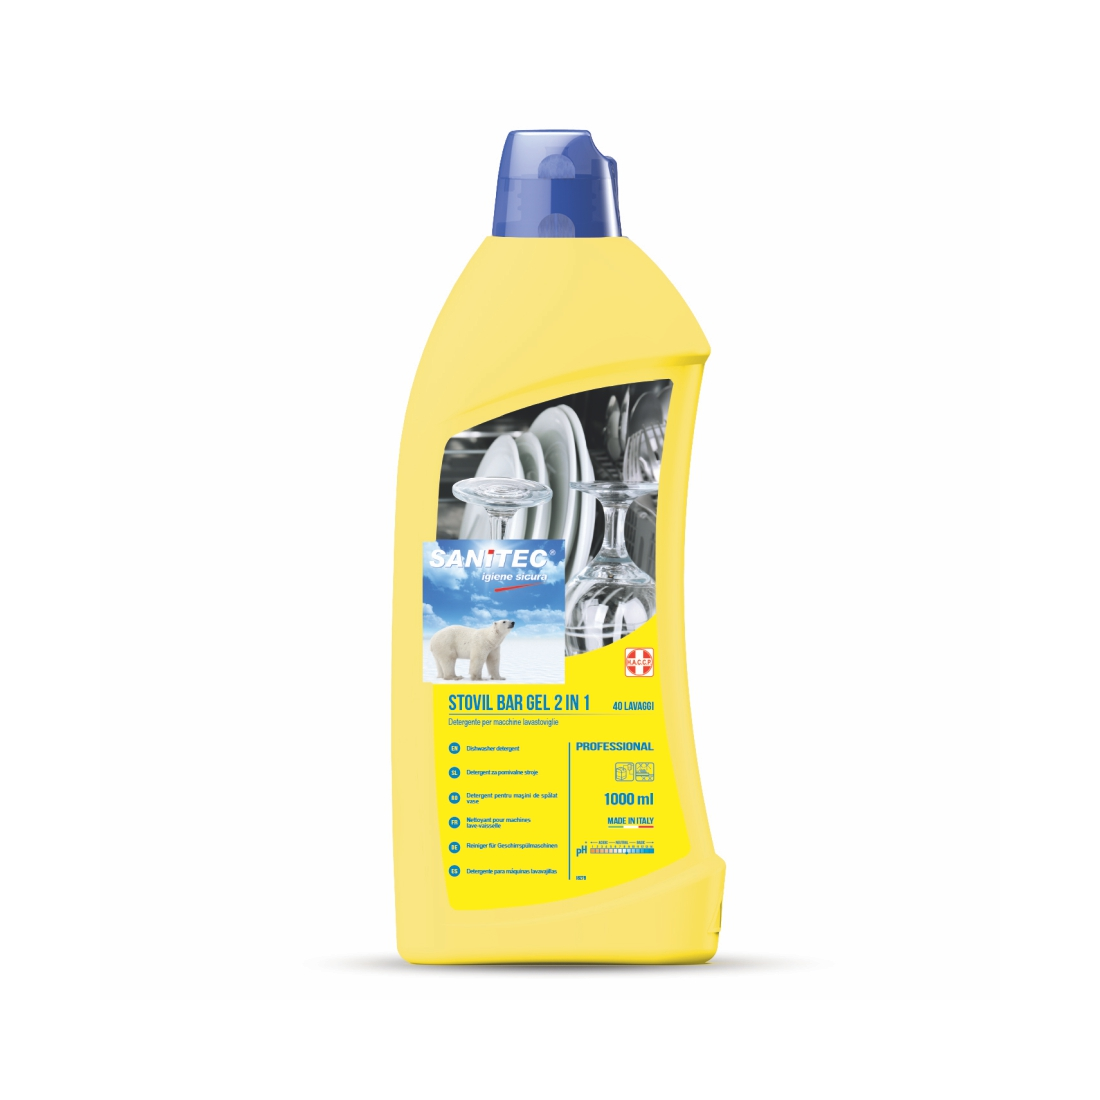 Stovil Bar Gel All in 1 Dishwash Product